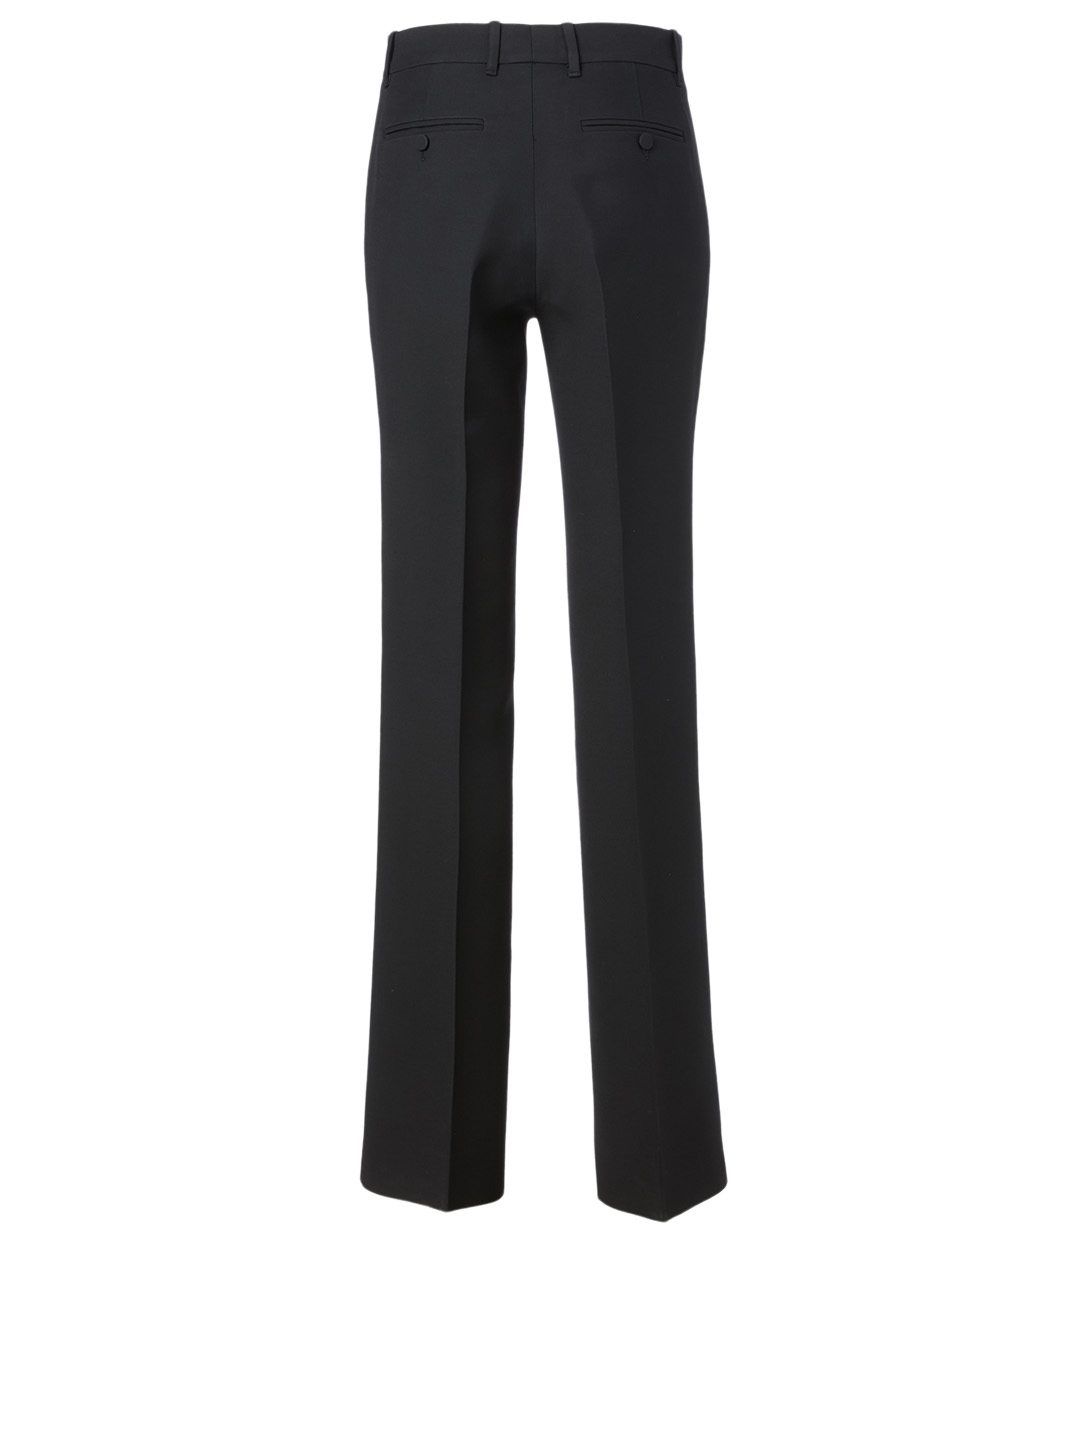 GUCCI Wool And Silk Flared Pants Women's Black